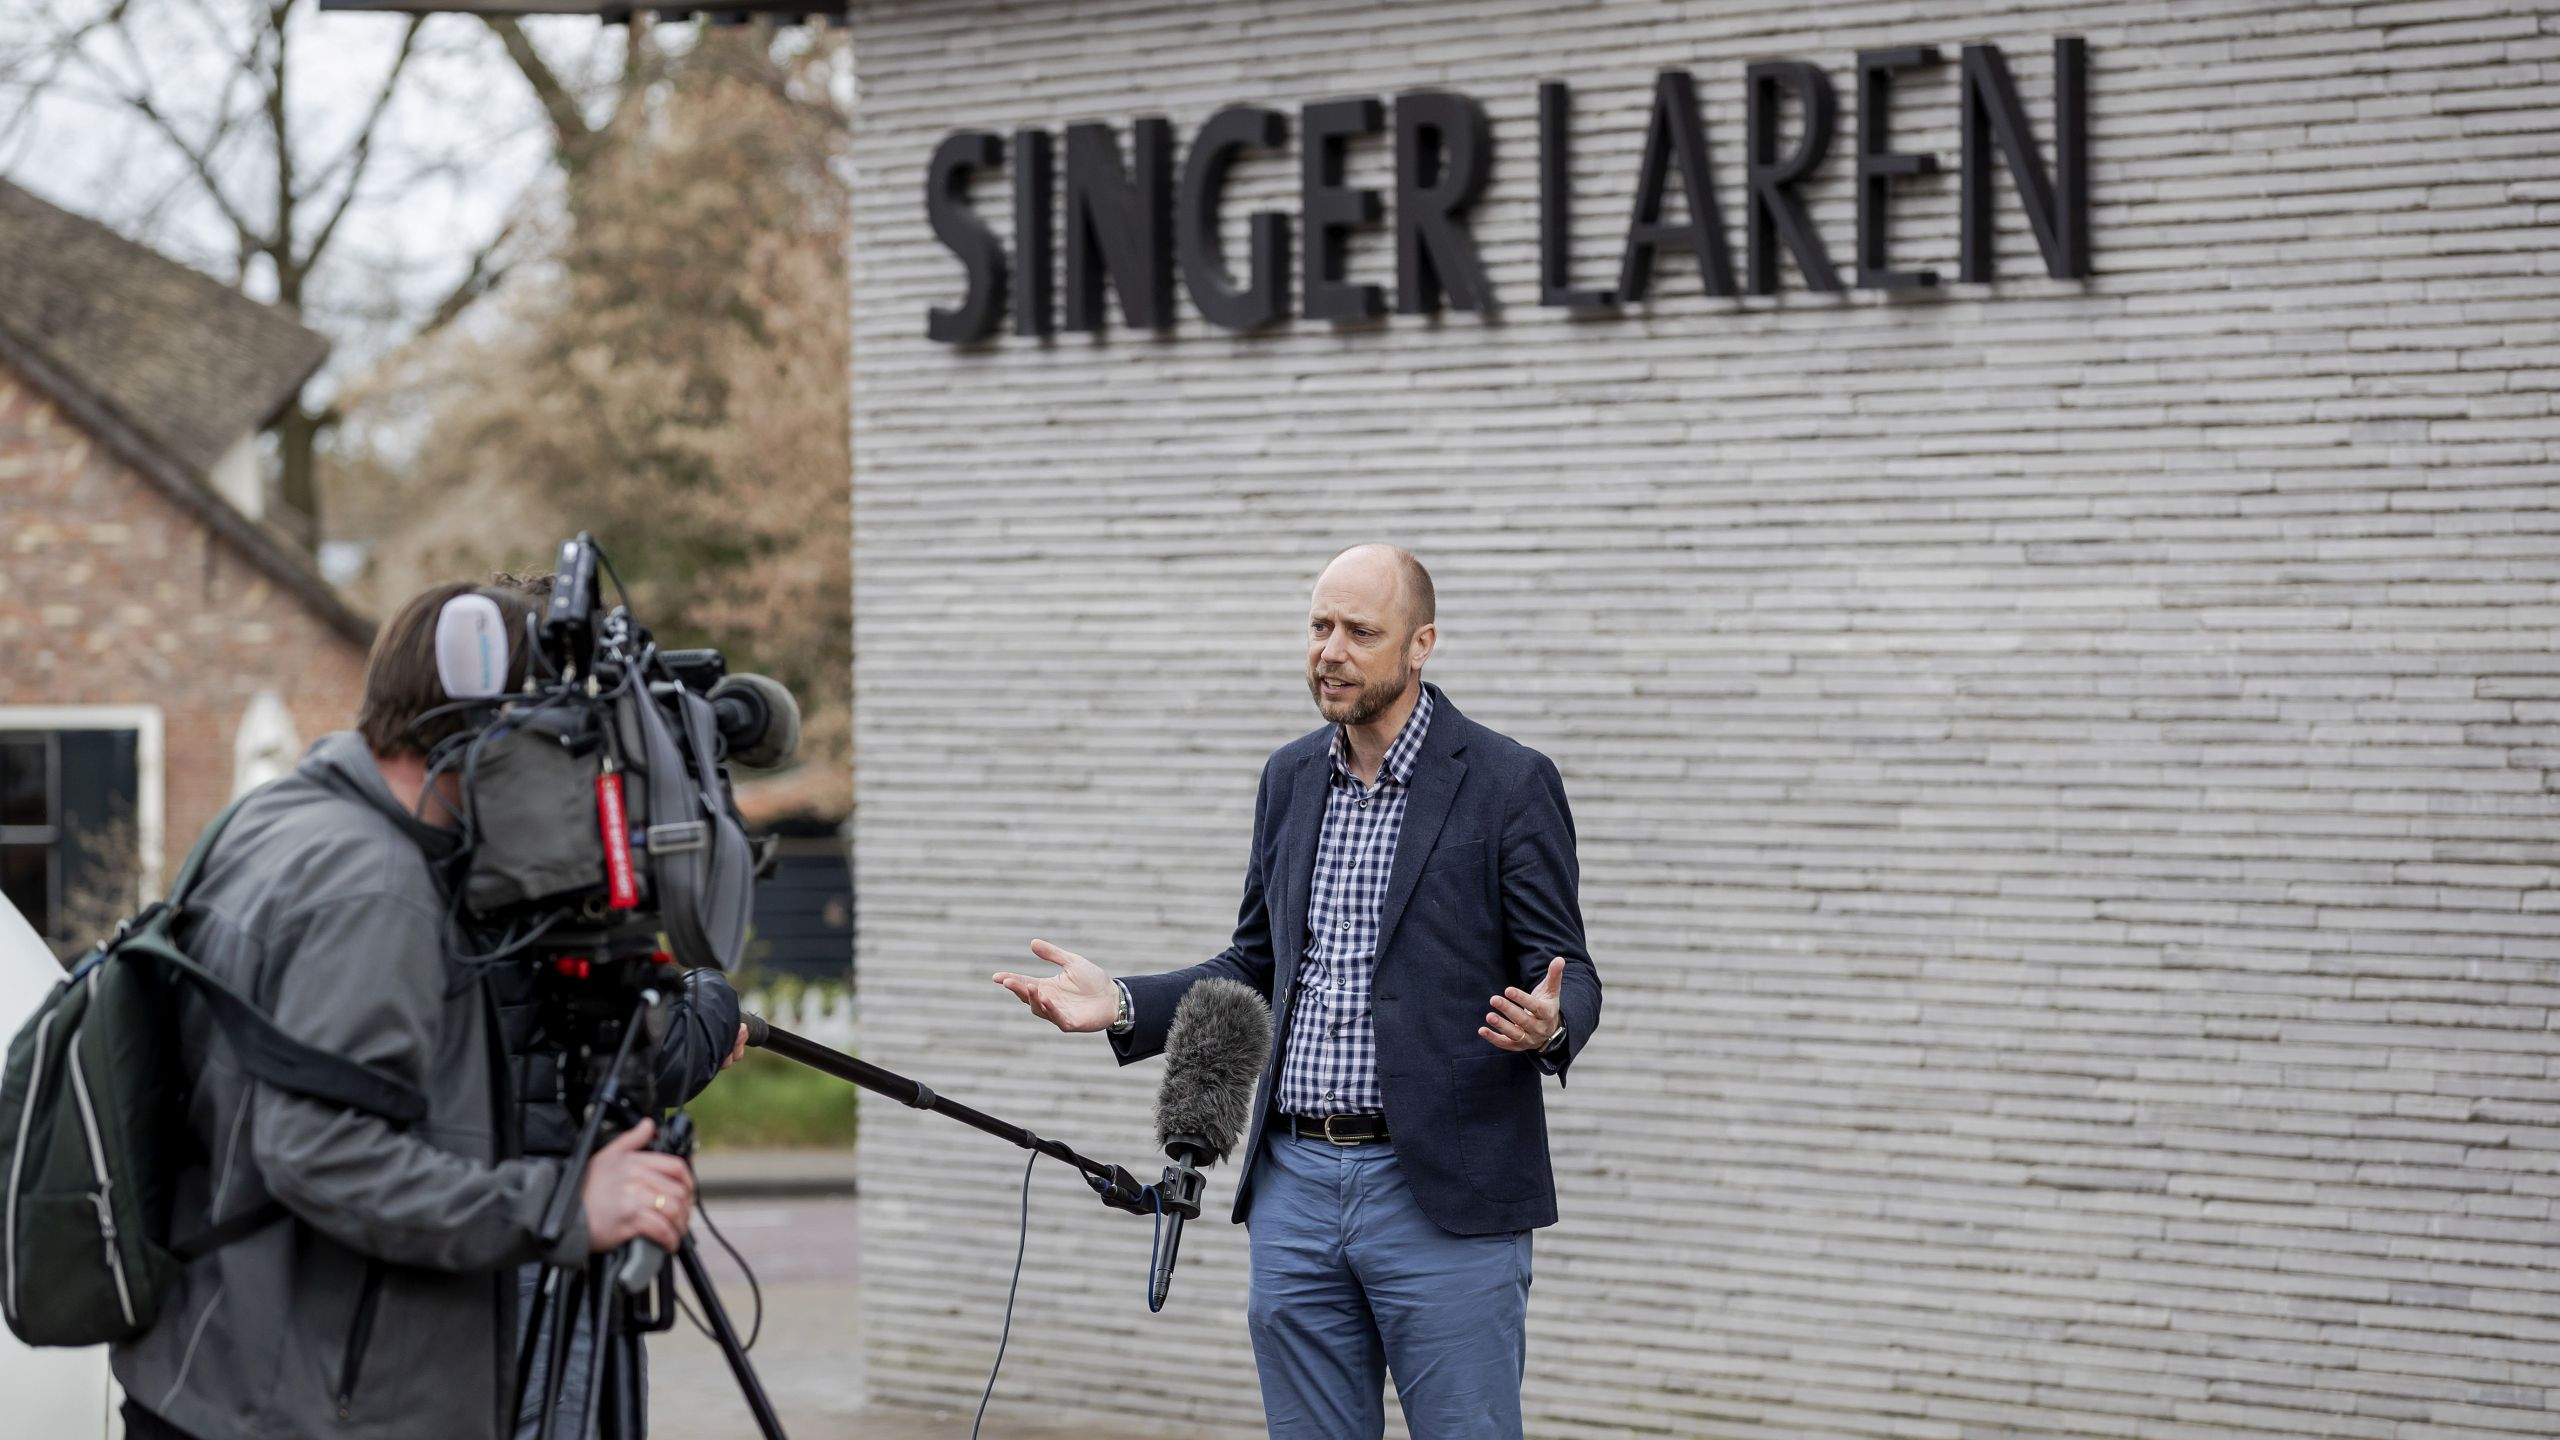 Evert van Os of Singer Laren Museum speaks to the press outside the museum on March 30, 2020 in Laren, Netherlands. (ROBIN VAN LONKHUIJSEN/ANP/AFP via Getty Images)